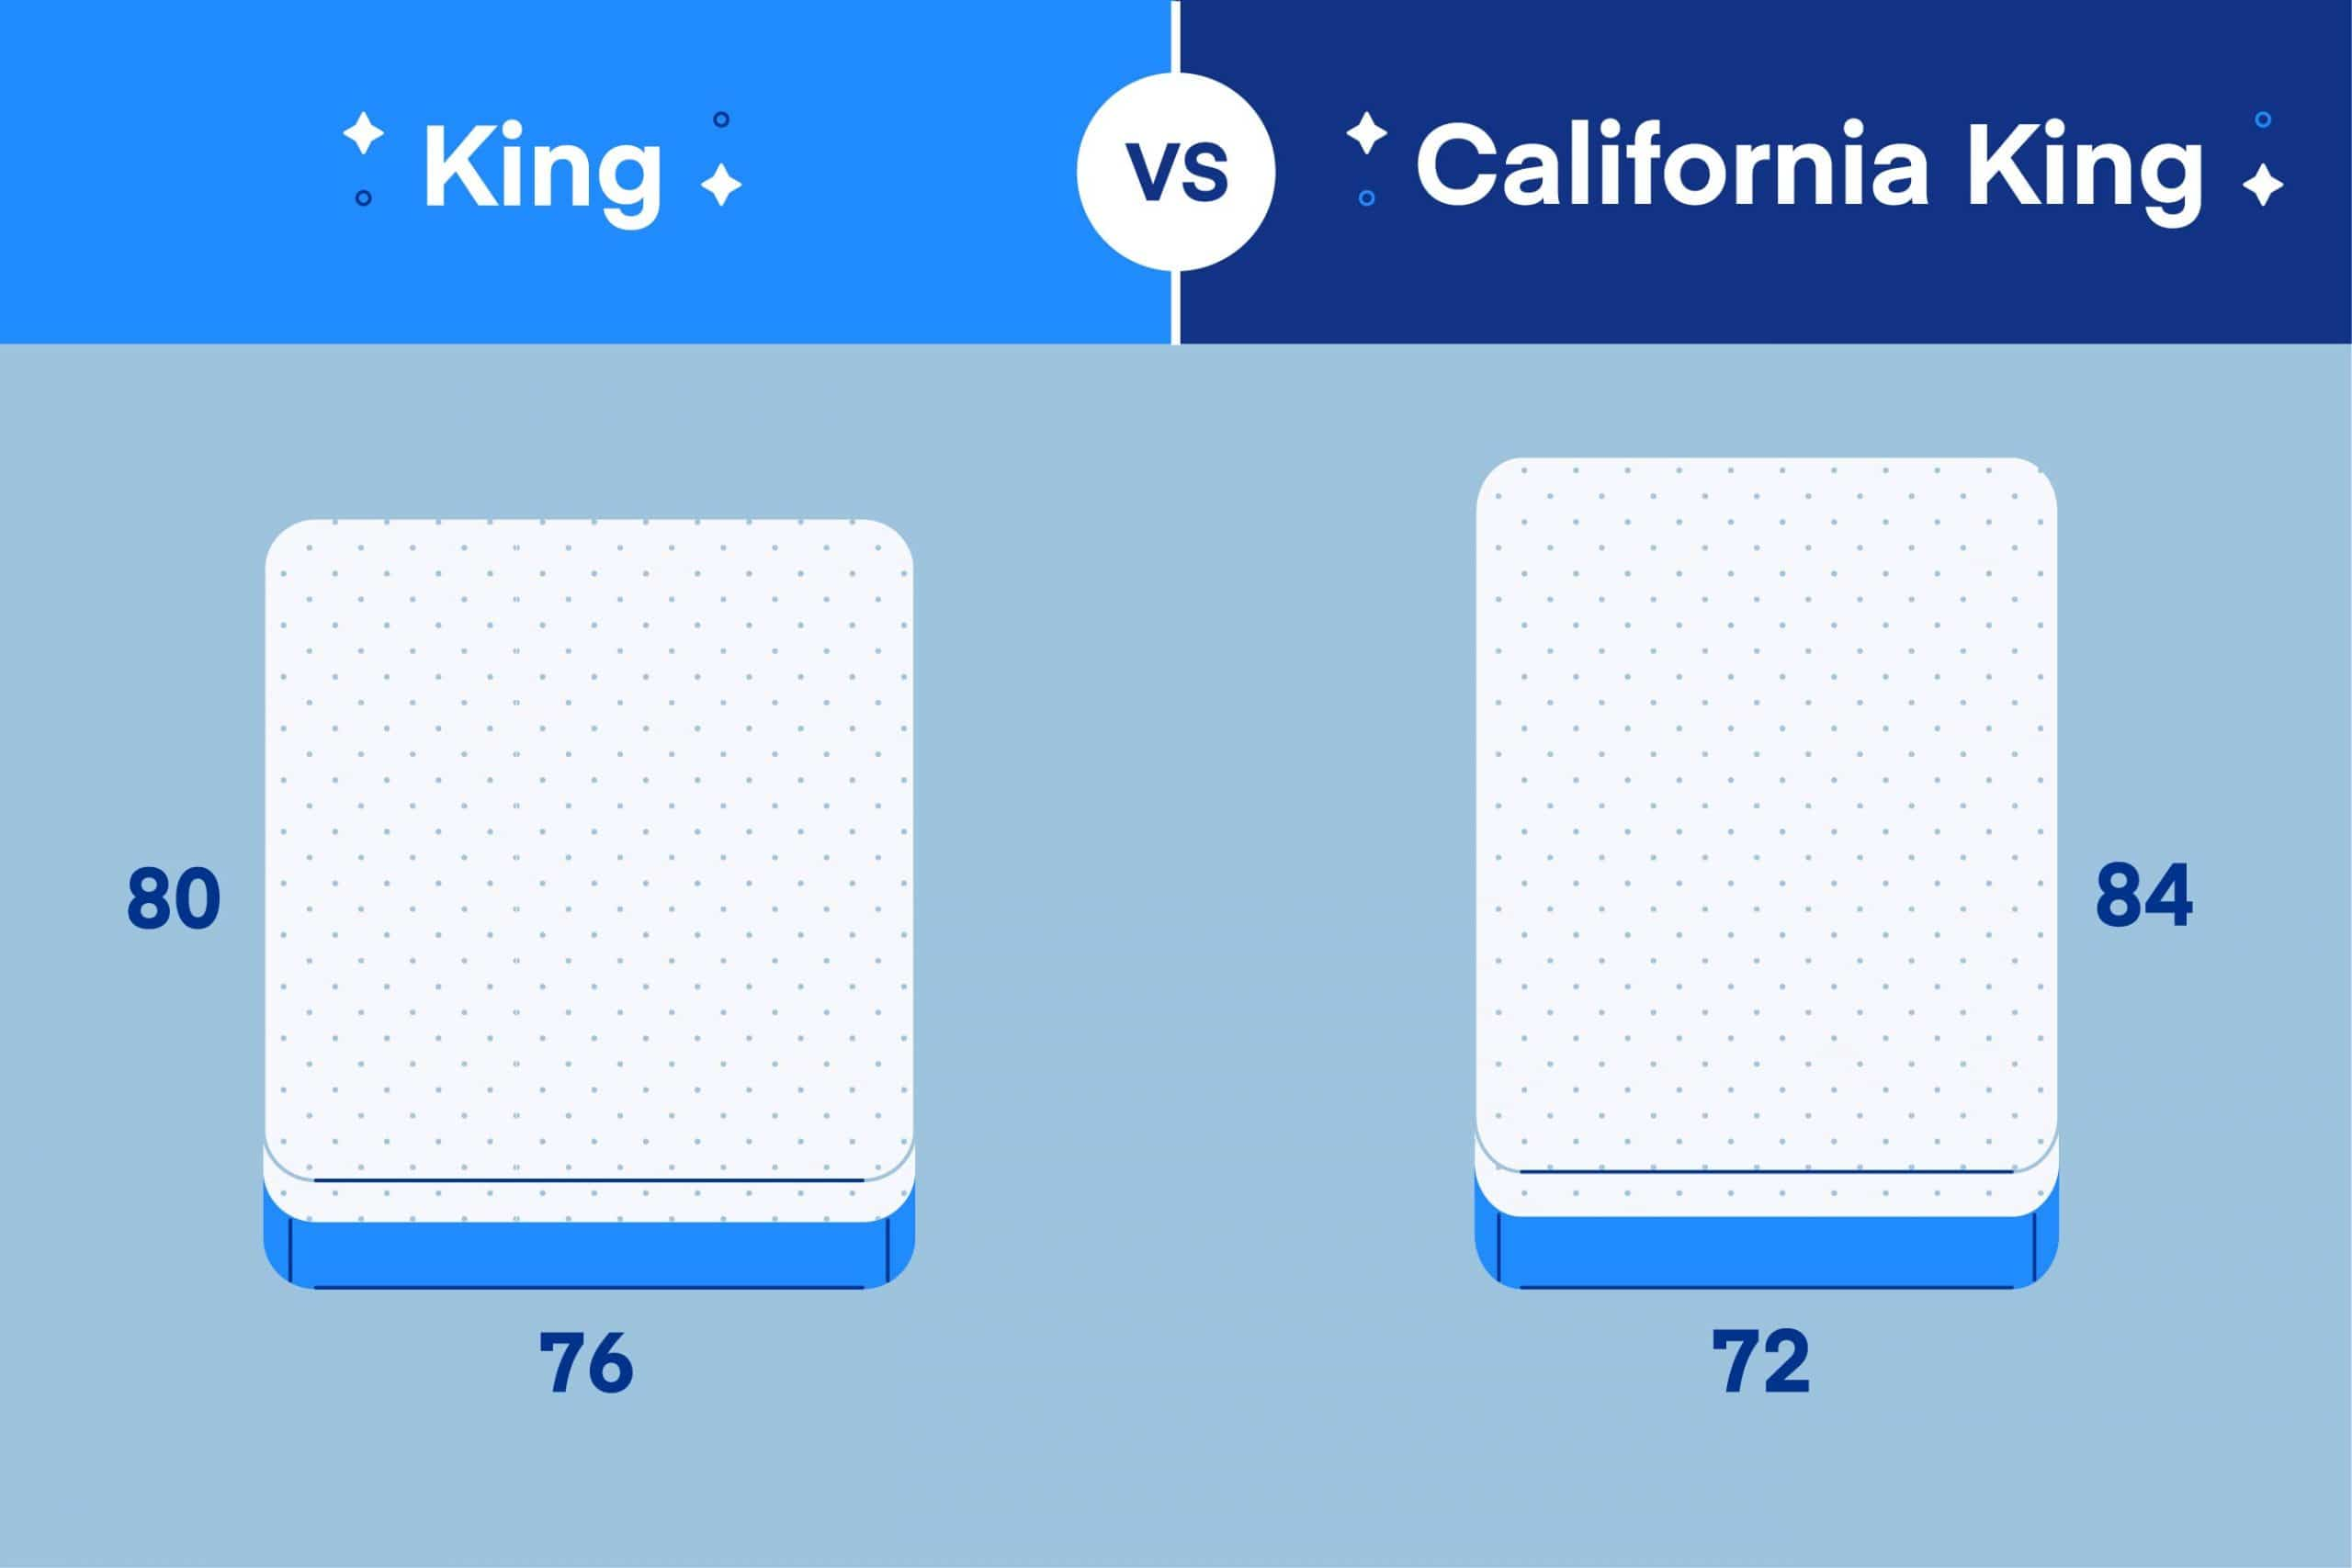 King vs. California King: What's the Difference?